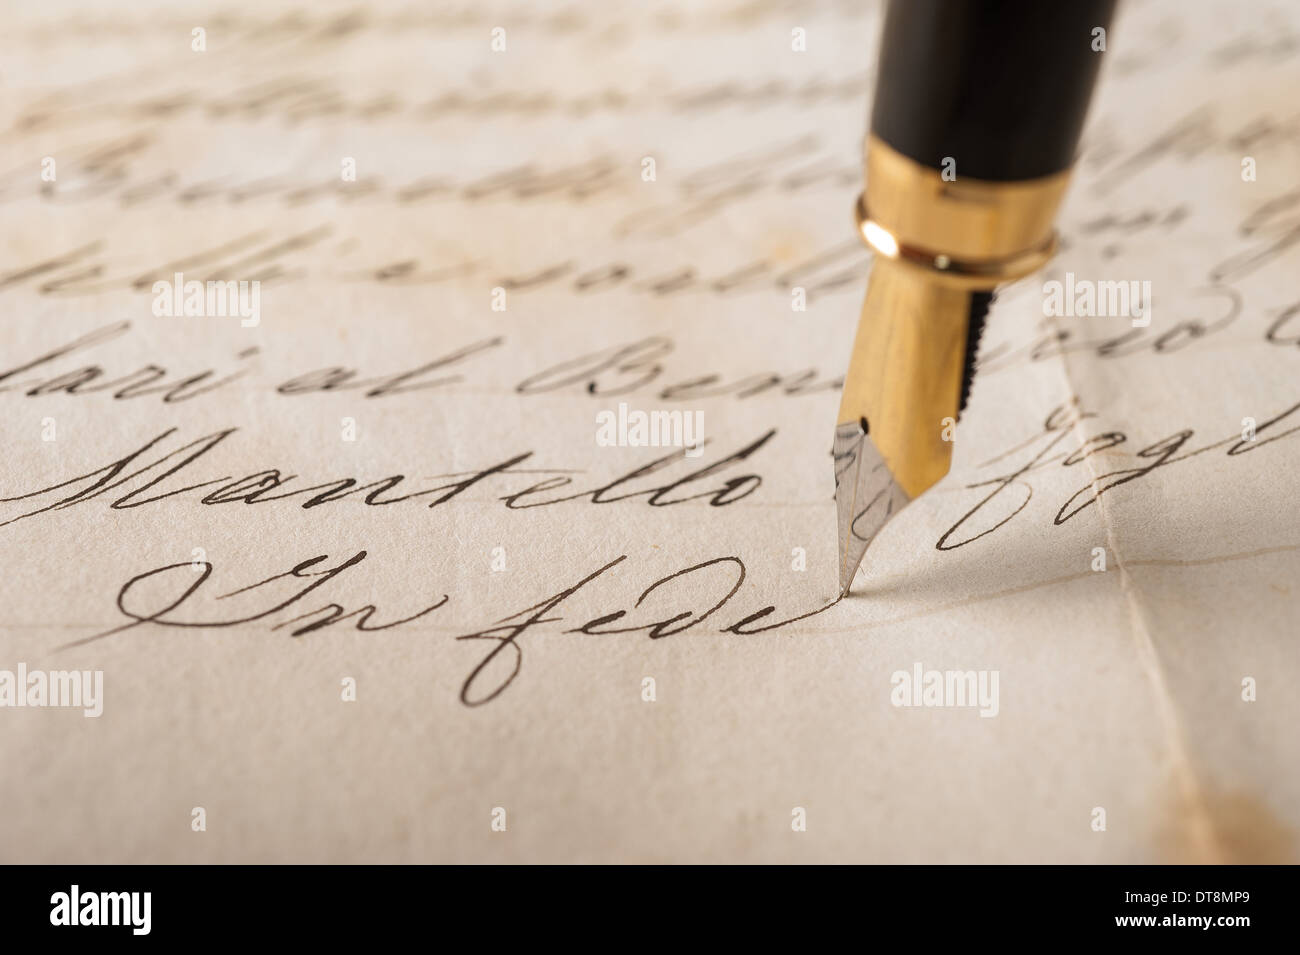 Fountain pen writing on an old handwritten letter stock photo fountain pen writing on an old handwritten letter thecheapjerseys Images